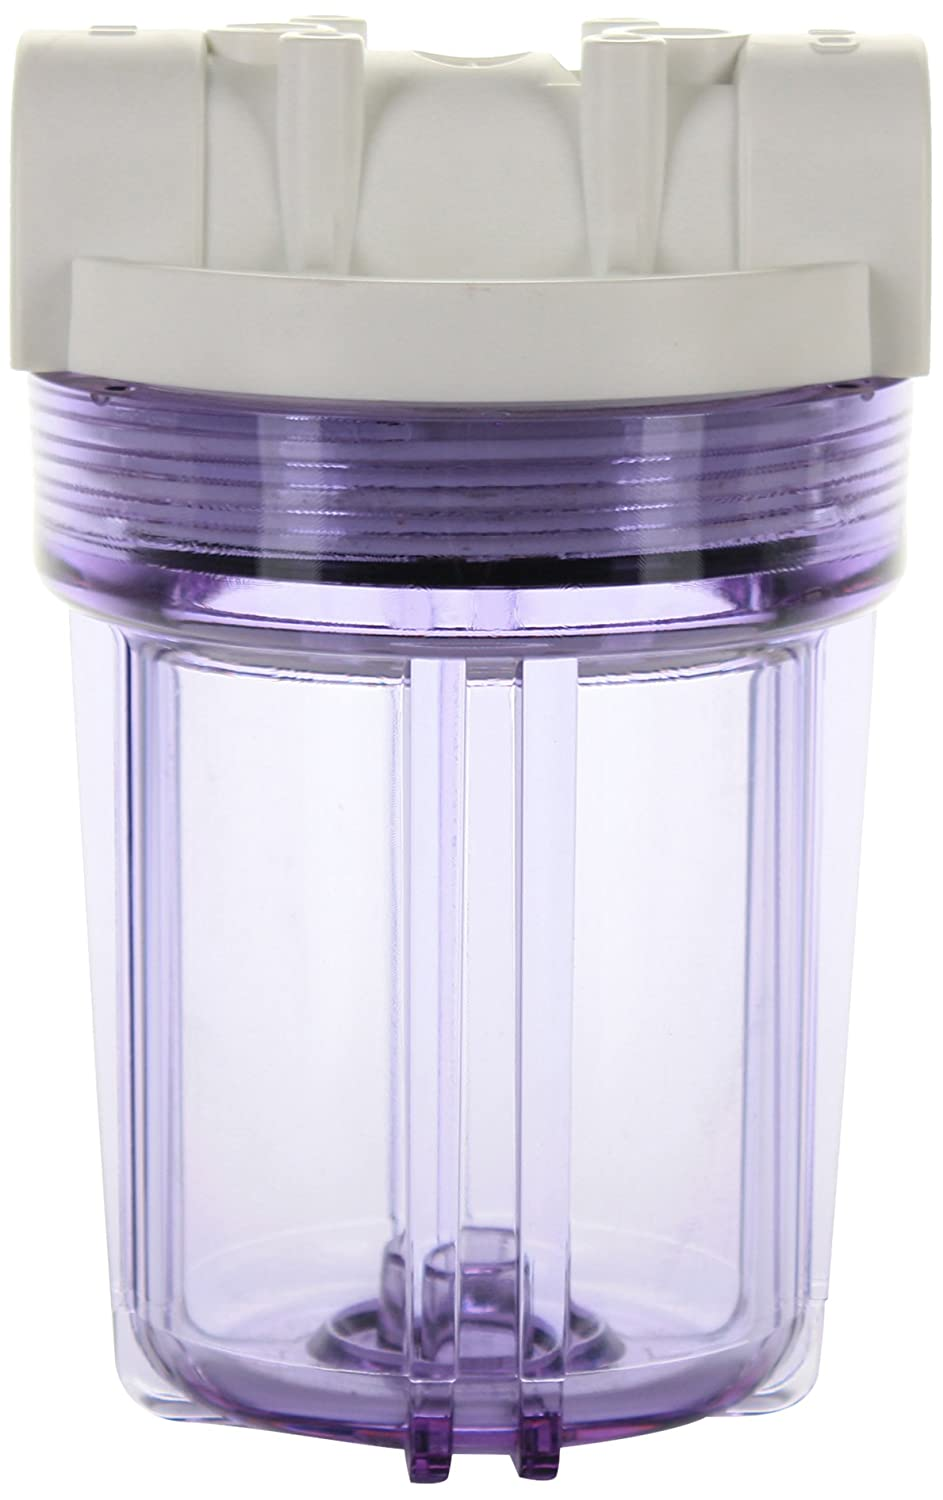 Hydronix HX-HF3-5CLWH14 5 Clear Housing with White Rib Cap For RO /& Filtration Systems 1//4 Ports,